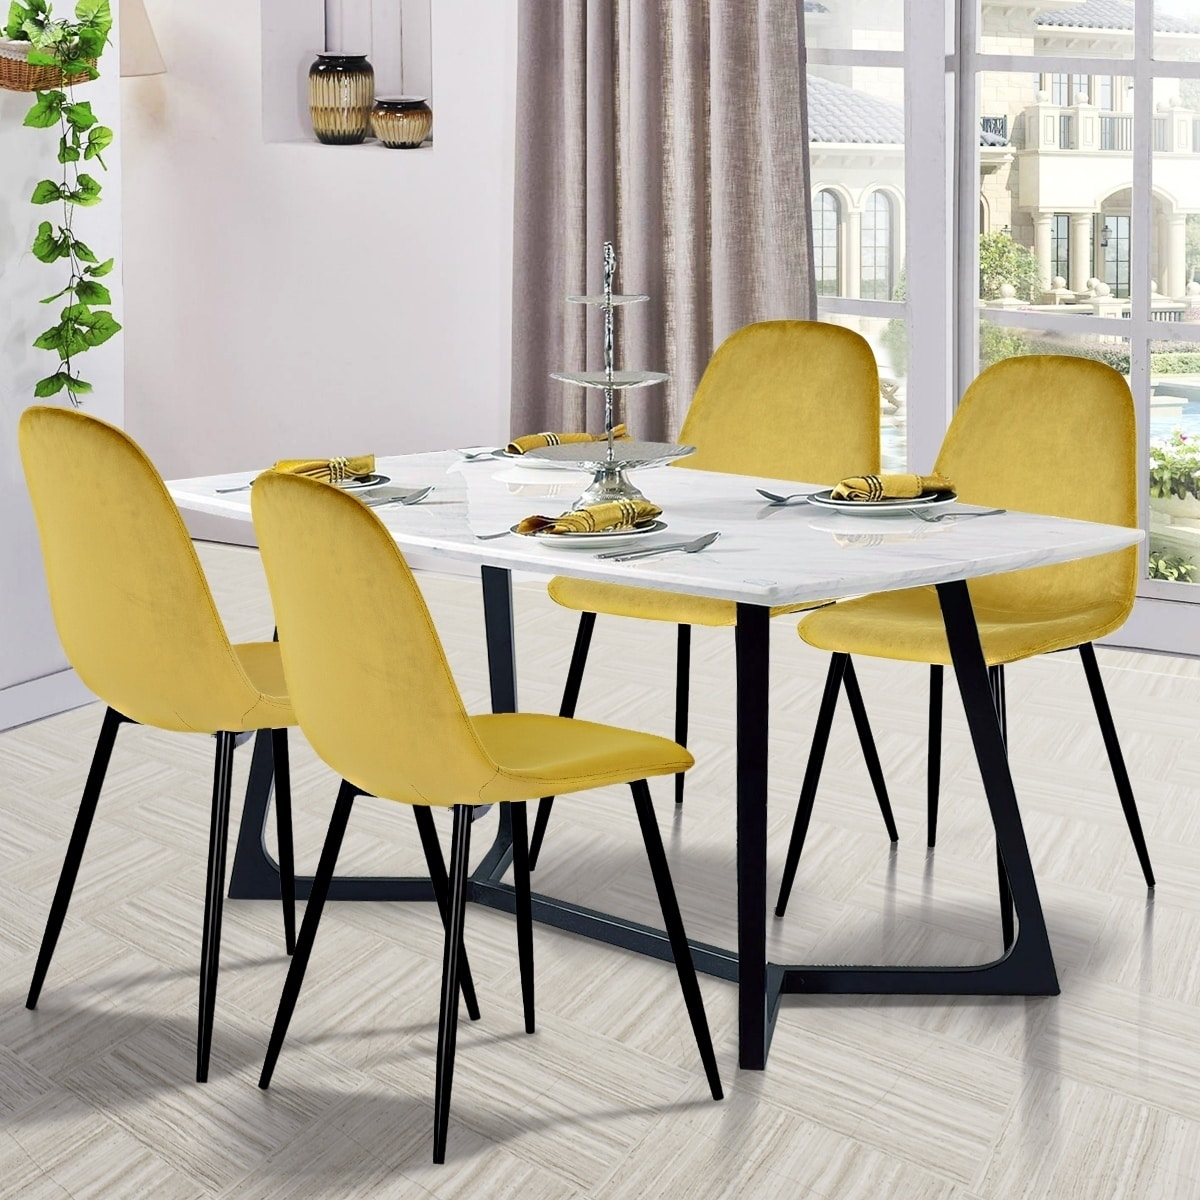 Set Of 2 Modern Dining Chairs Yellow Soft Velvet Seat Cushion Covers Metal Legs Isp Paris